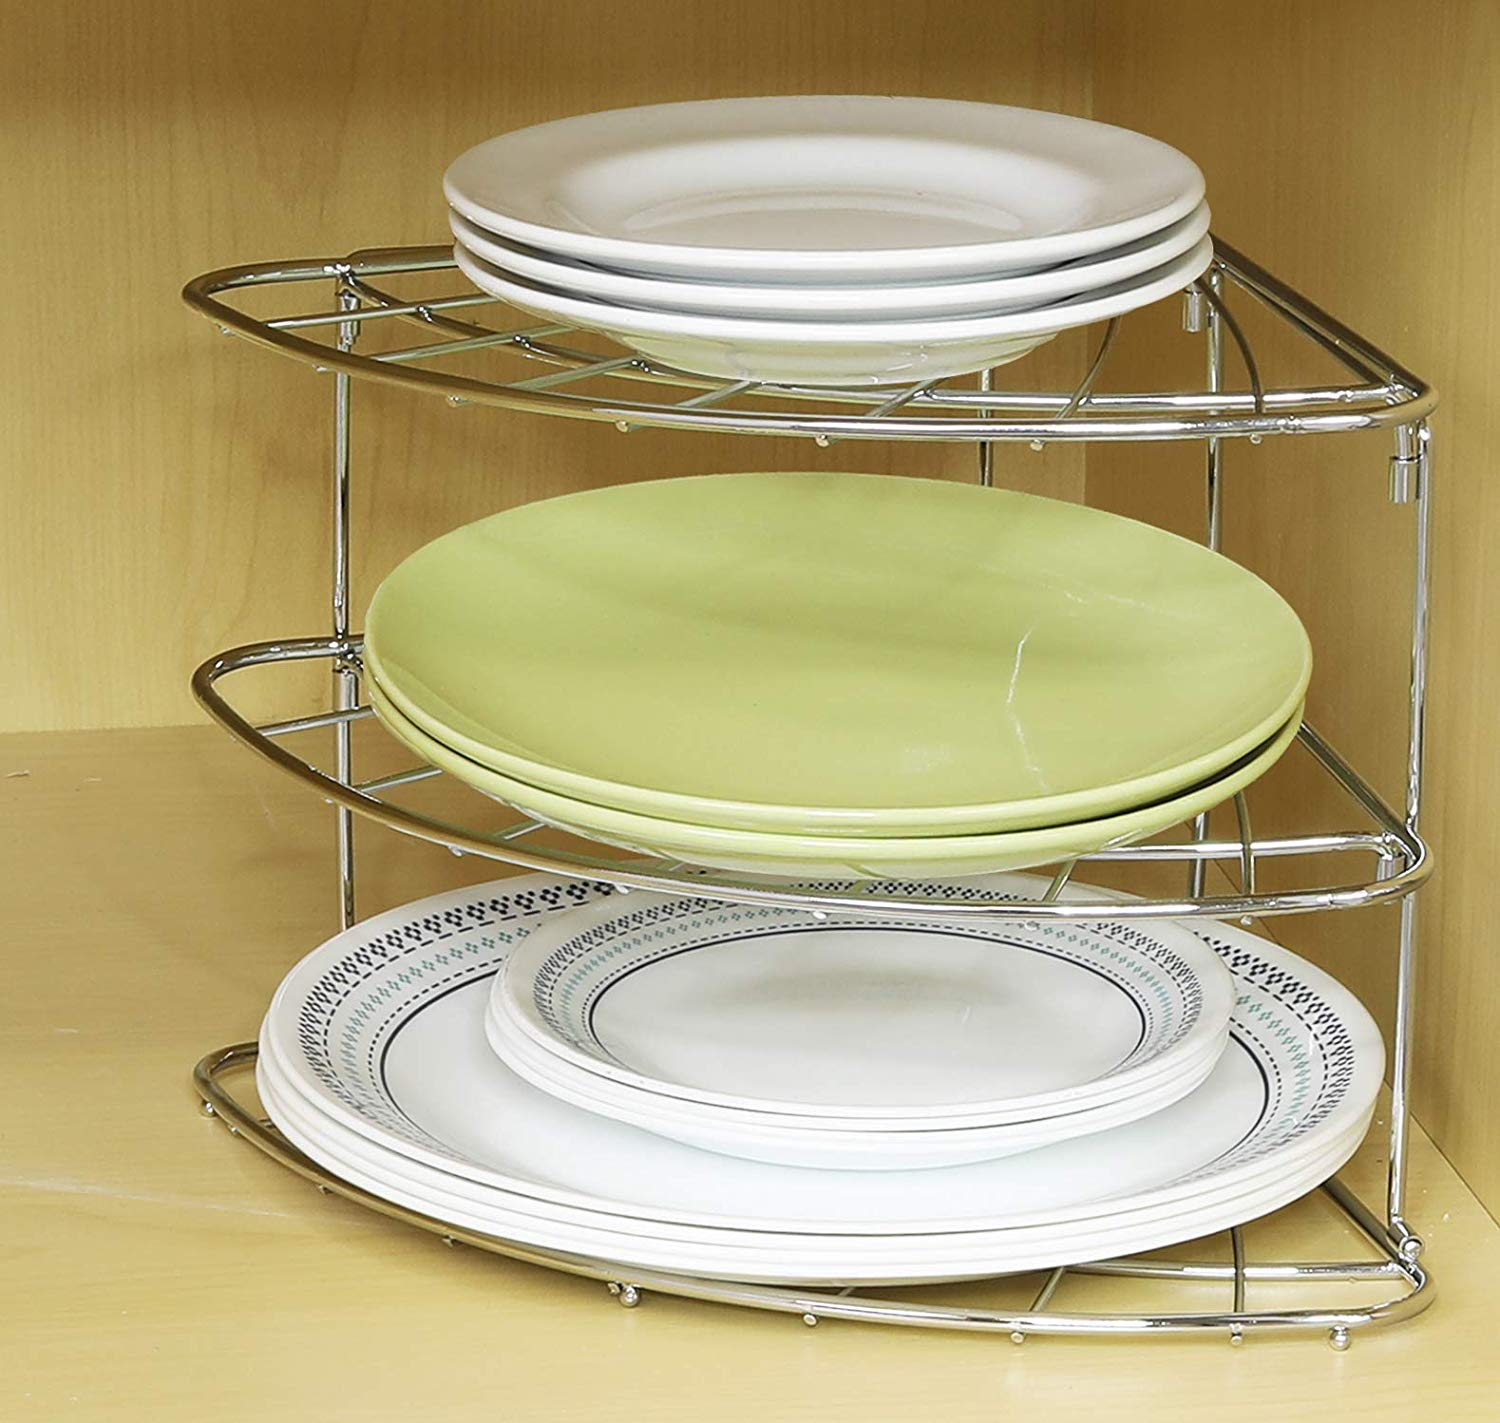 corner shelf organizer - 20 clever organizing ideas for taming your kitchen clutter